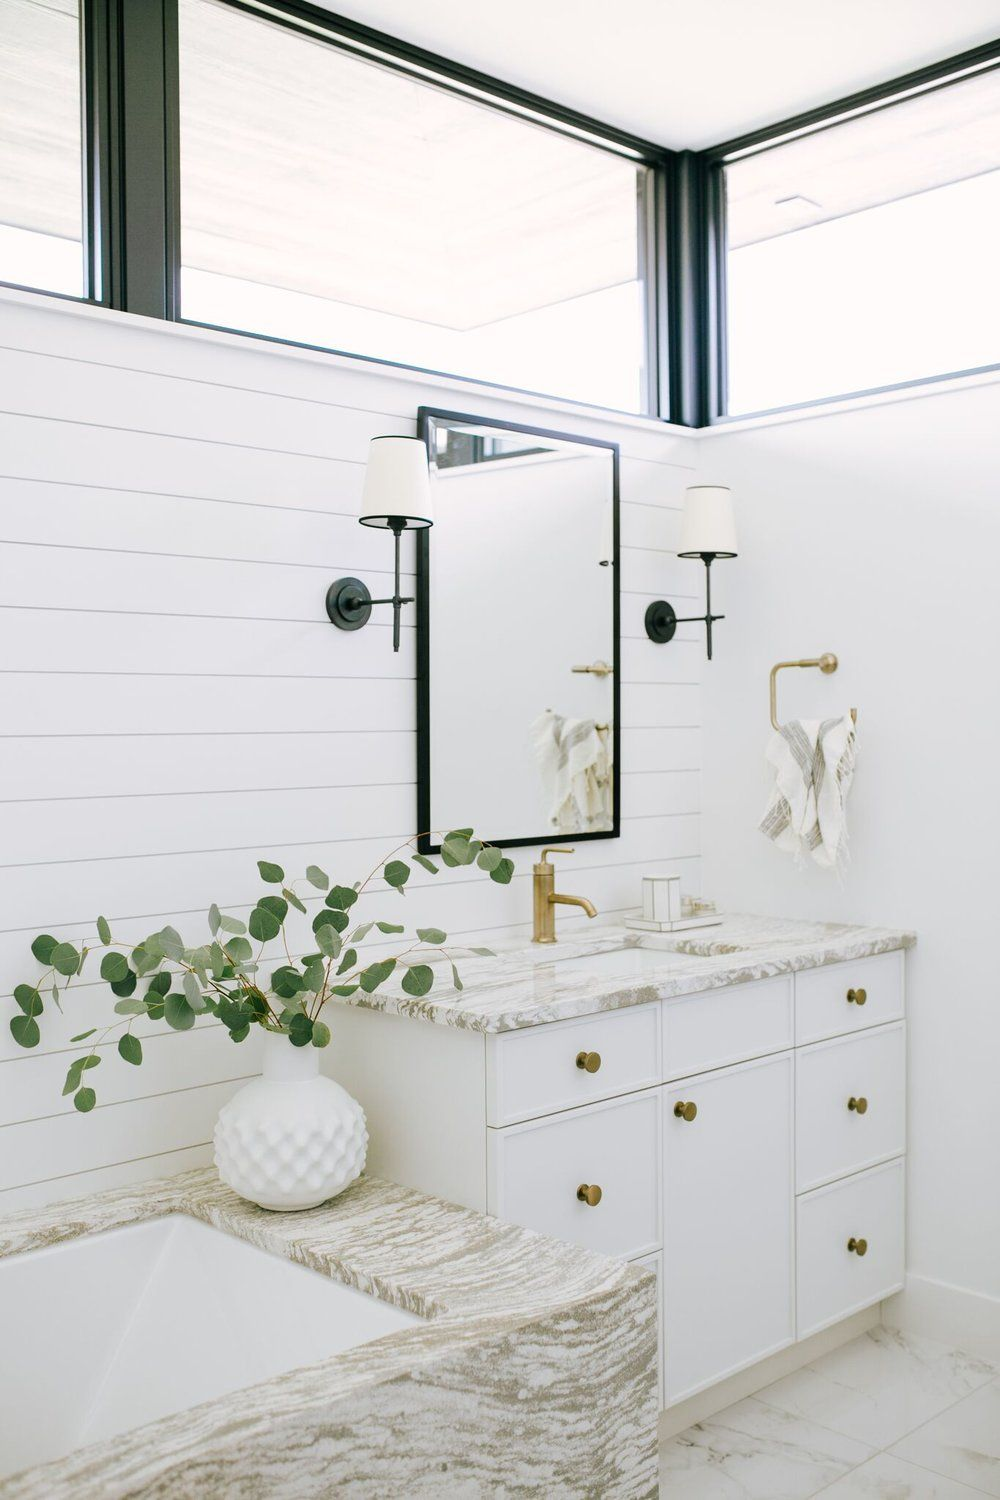 Bathroom design featuring white and tan marble and shiplap walls ...